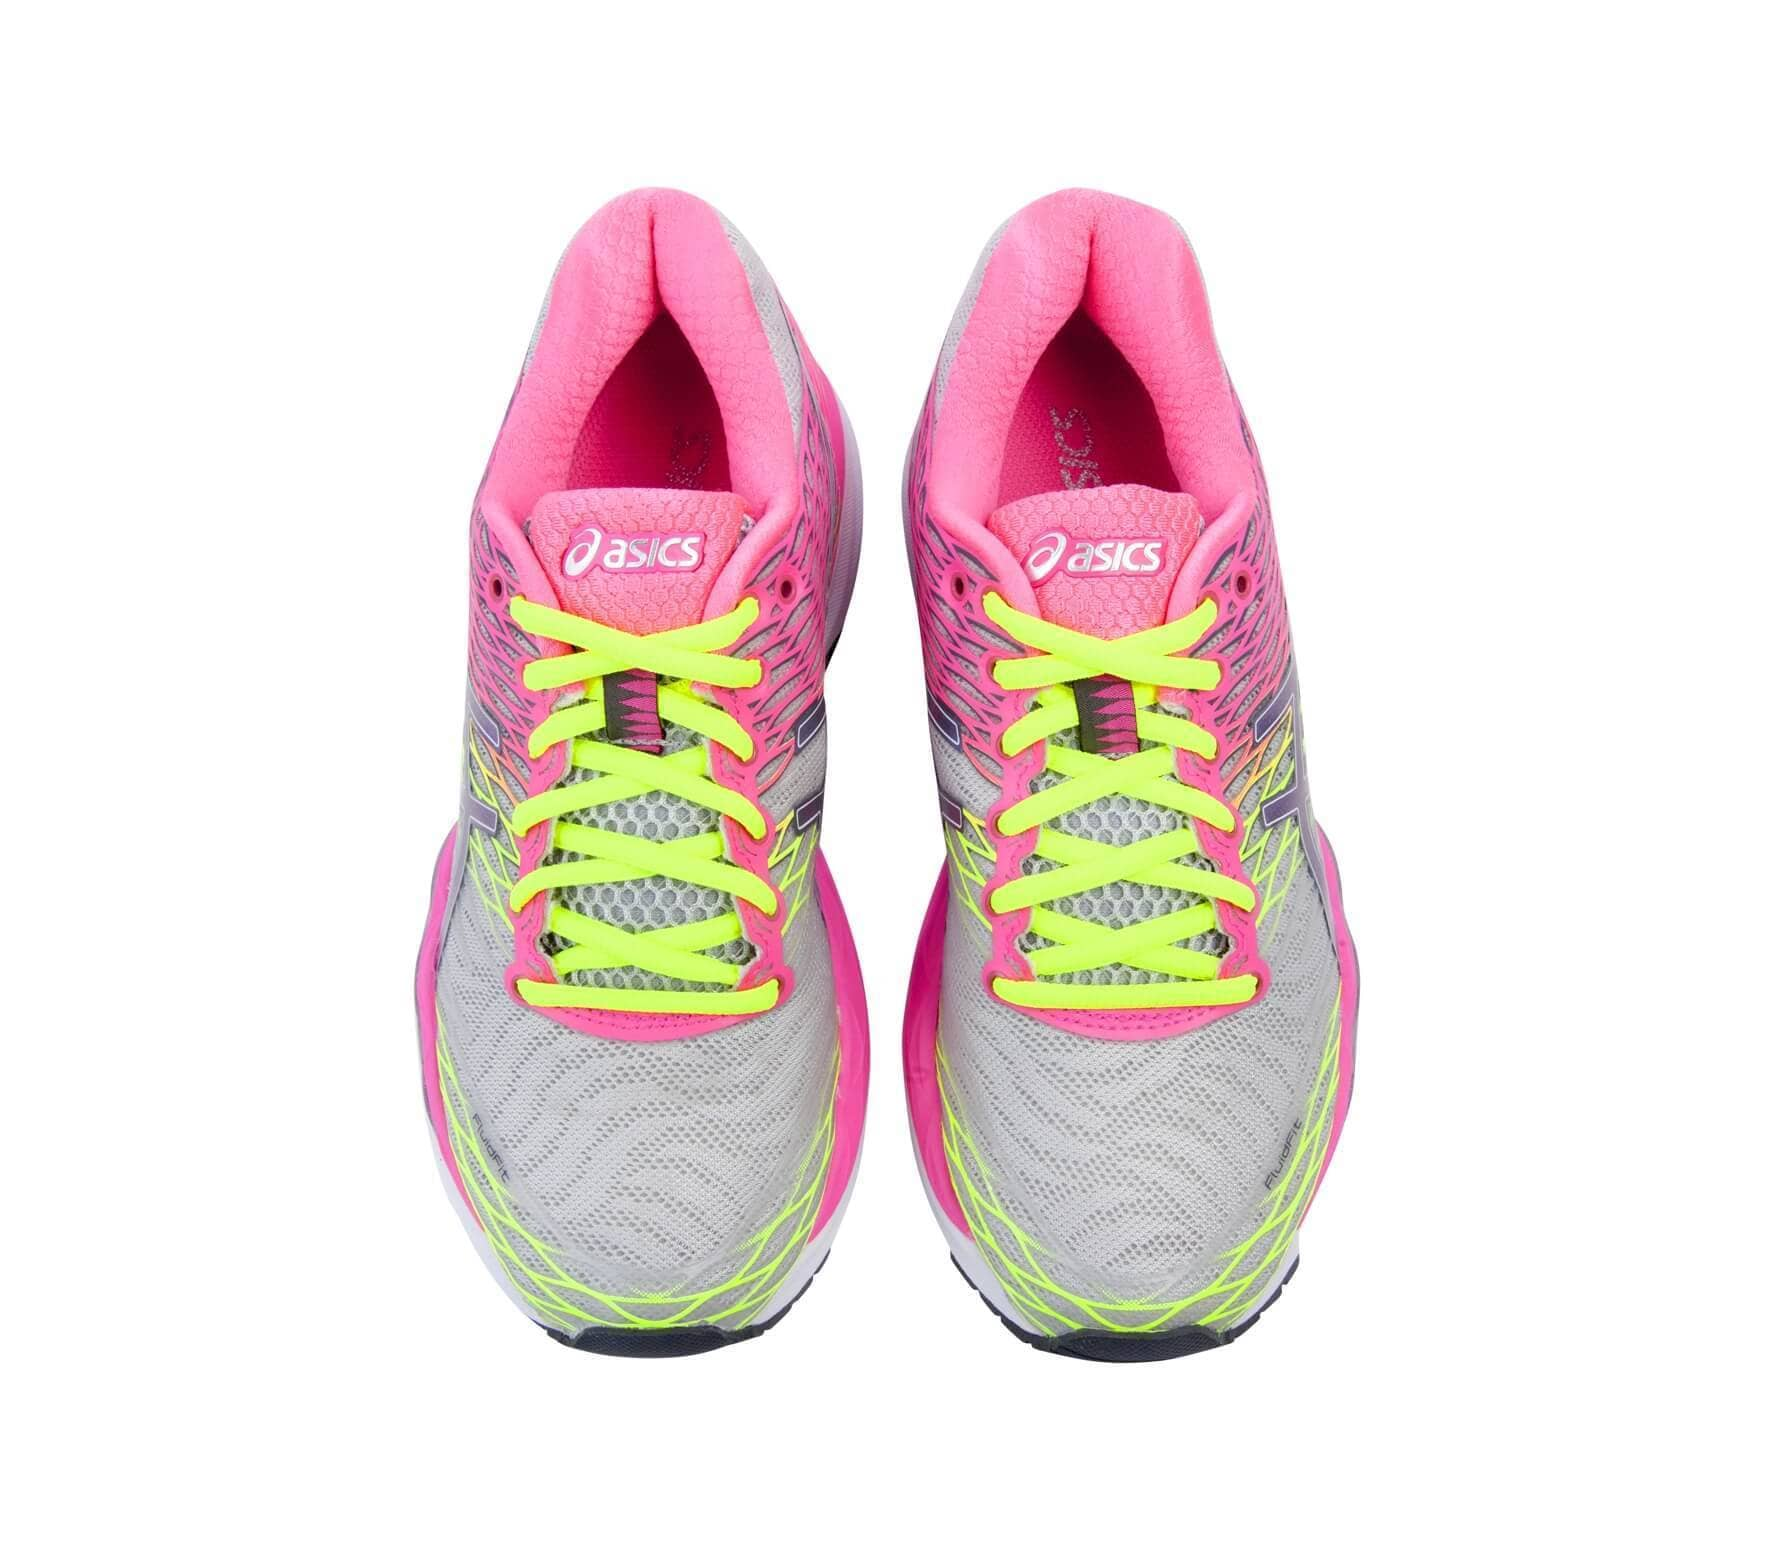 ASICS Gel-Nimbus 18 women's running shoes Damen